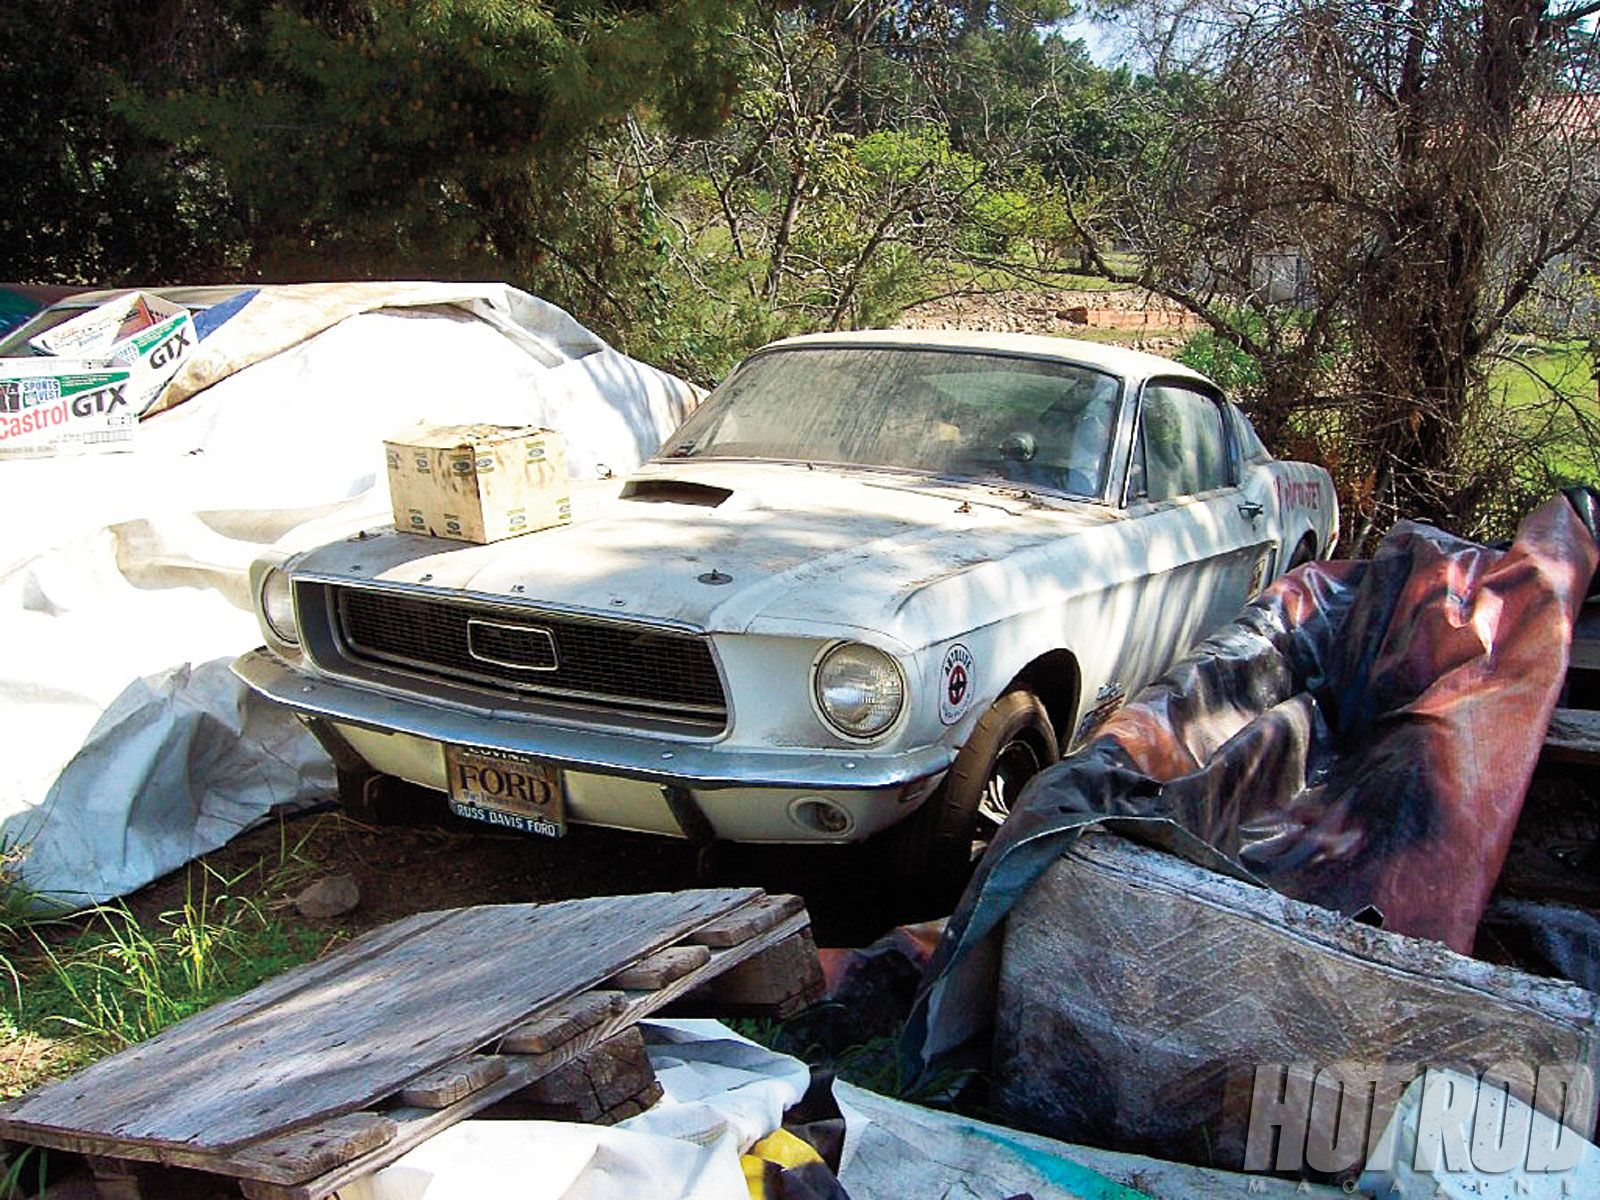 Jim heidenreichs backyard resembled a salvage yard joe boda took this picture of the cj where jim provided by hotrod